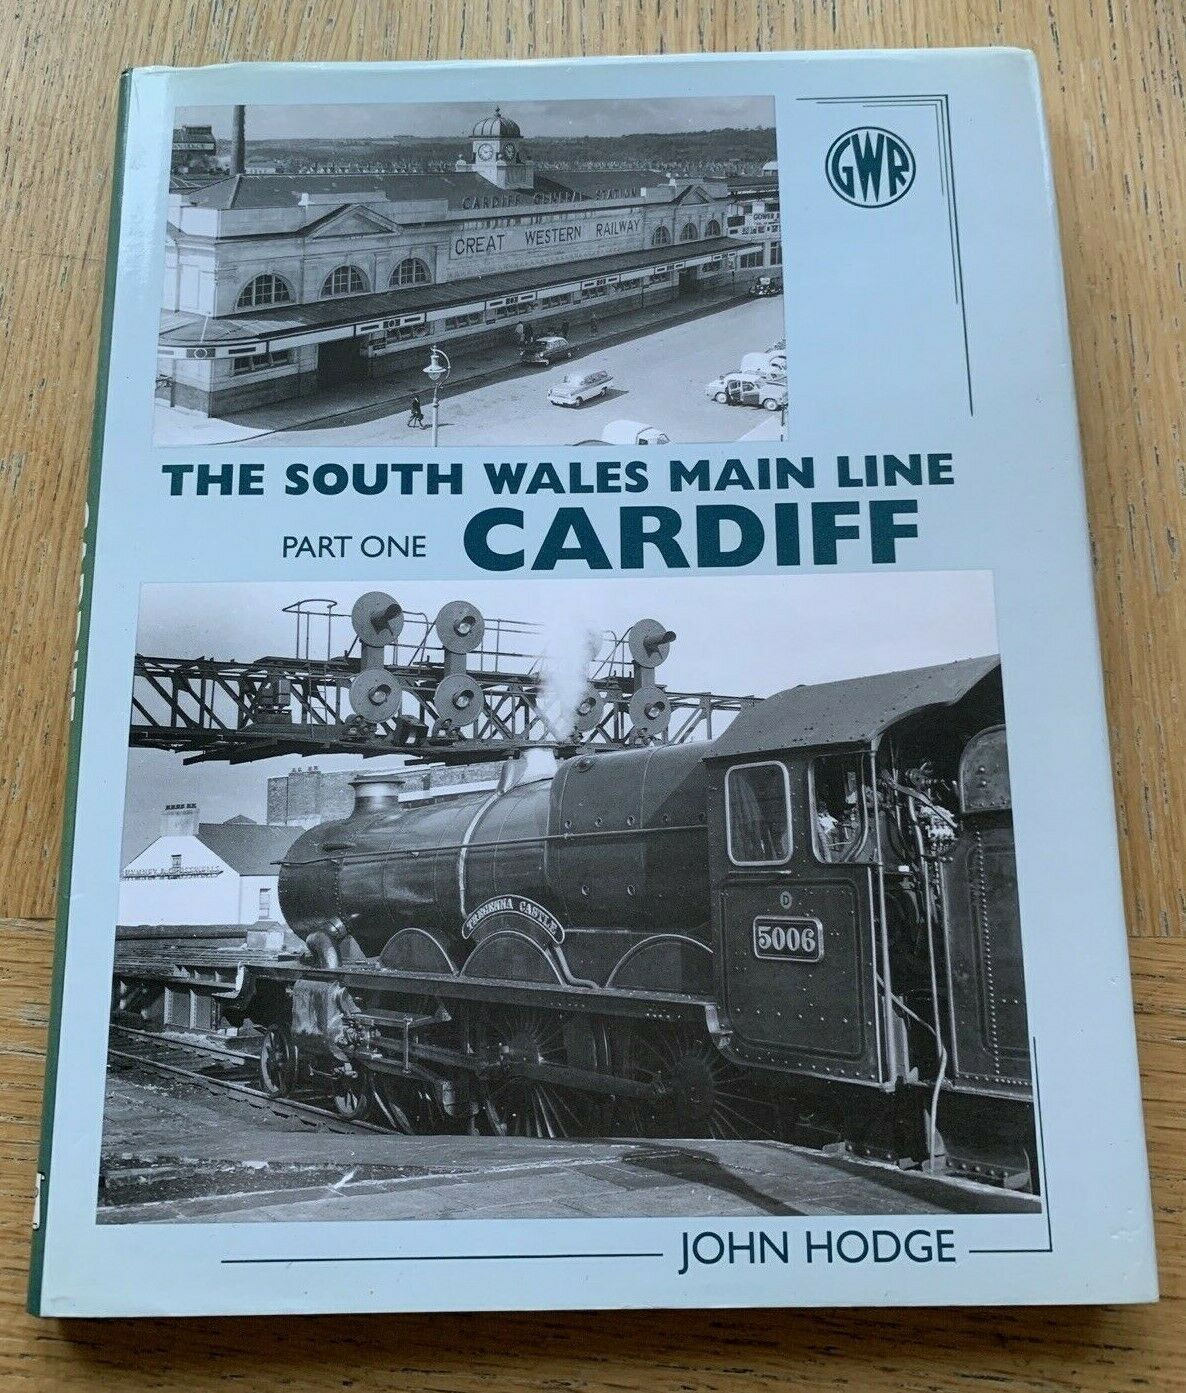 The South Wales Main Line: Part 1 Cardiff (John Hodge, Wild Swan, 2000)